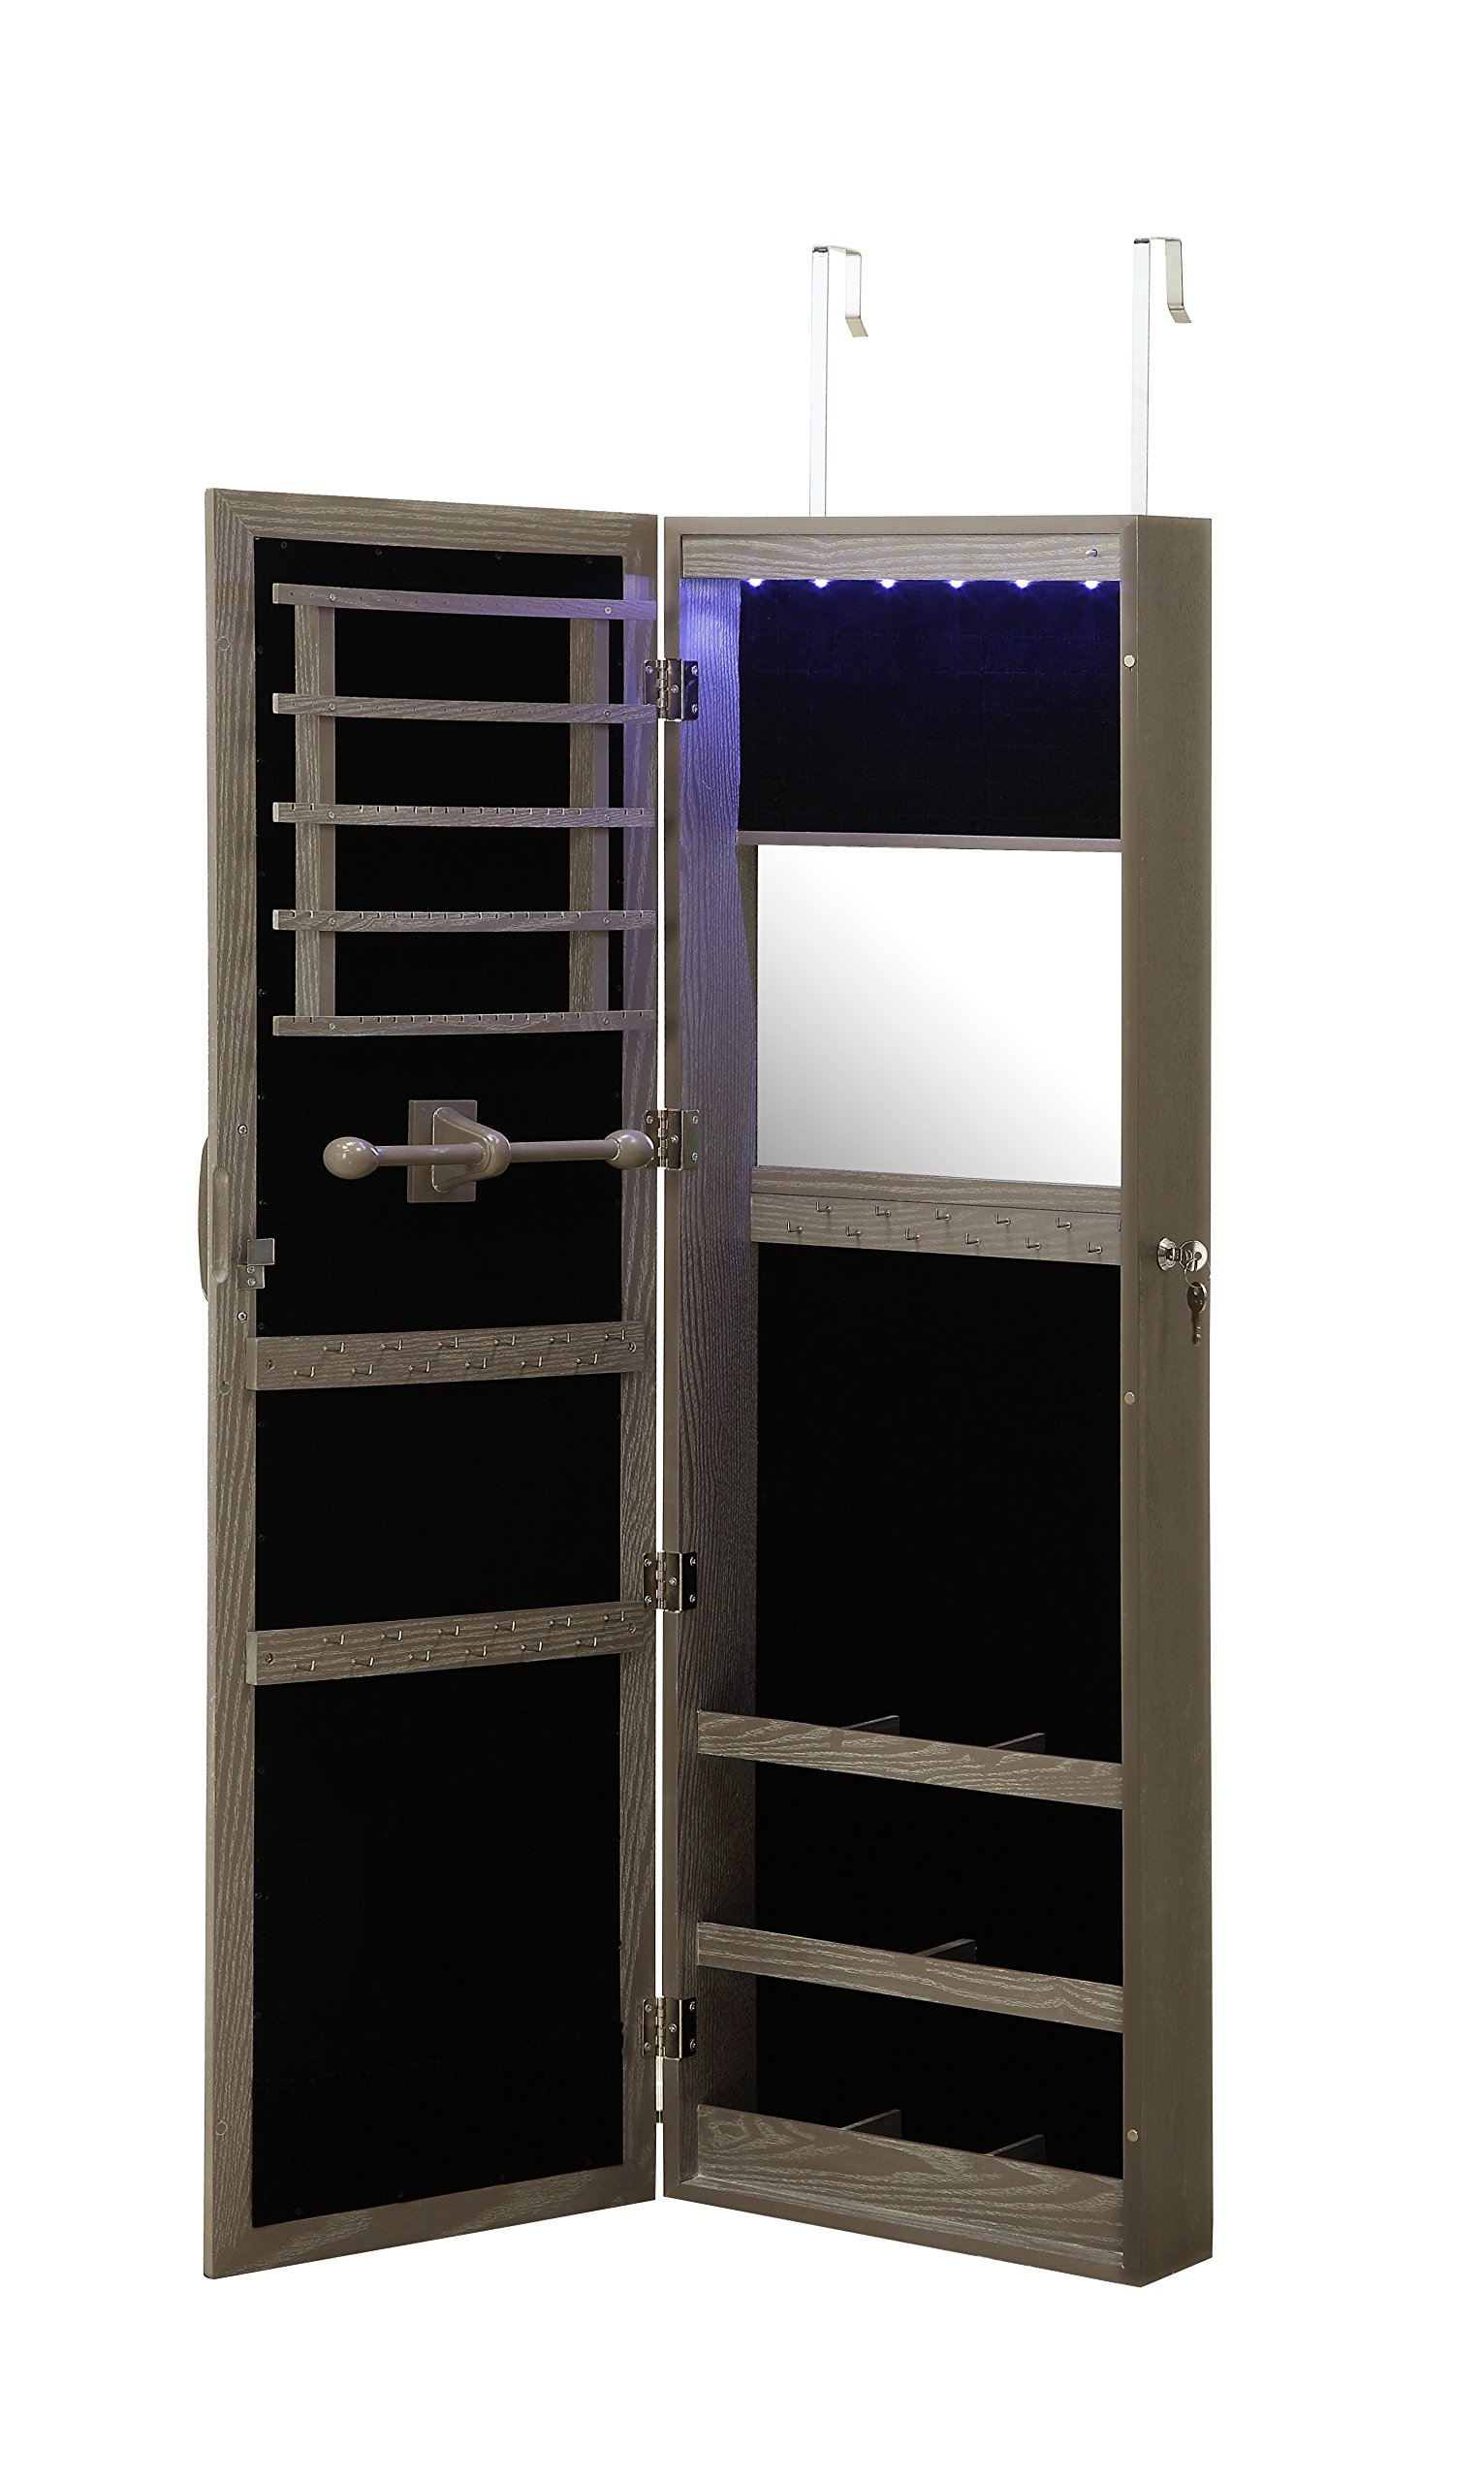 Get Quotations Lockable Wall Mounted Over The Door Jewelry Organizer Armoire Cabinet With Mirror And Led Lights By